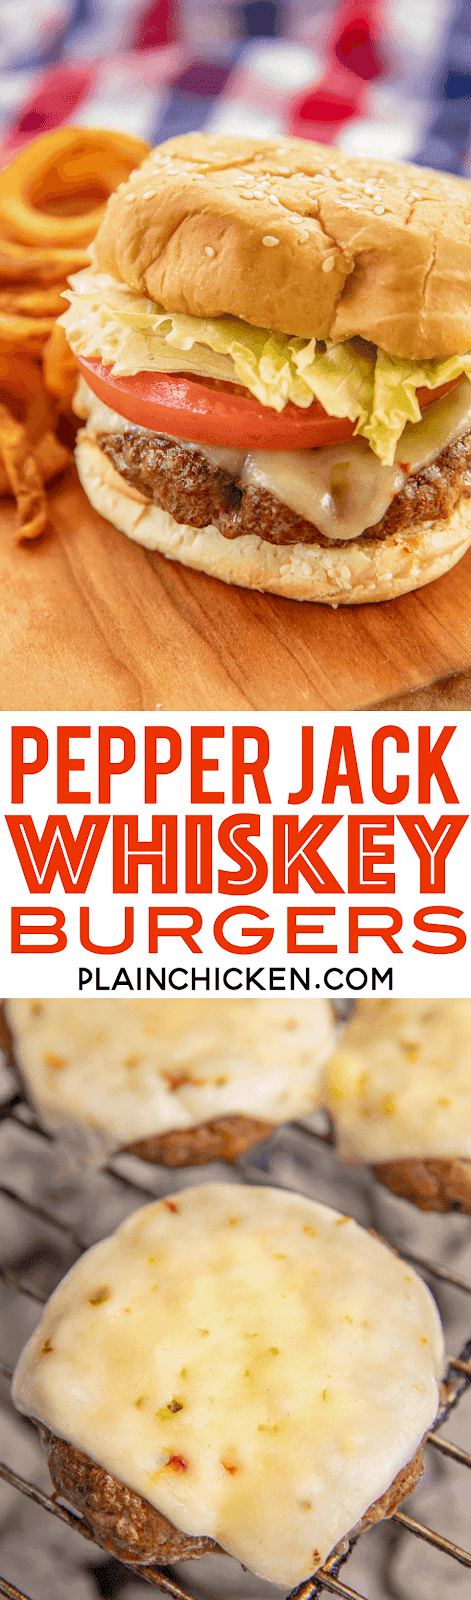 Pepper Jack Whiskey Burgers - seriously delicious! Ground beef, garlic salt, Worcestershire sauce, chili powder and a shot of whiskey. Top with sliced pepper jack cheese. Made these at our cookout and everyone asked for the recipe! Can make ahead of time and freeze patties for later. YUM! #grill #burgers #tailgating #freezermeal #beef